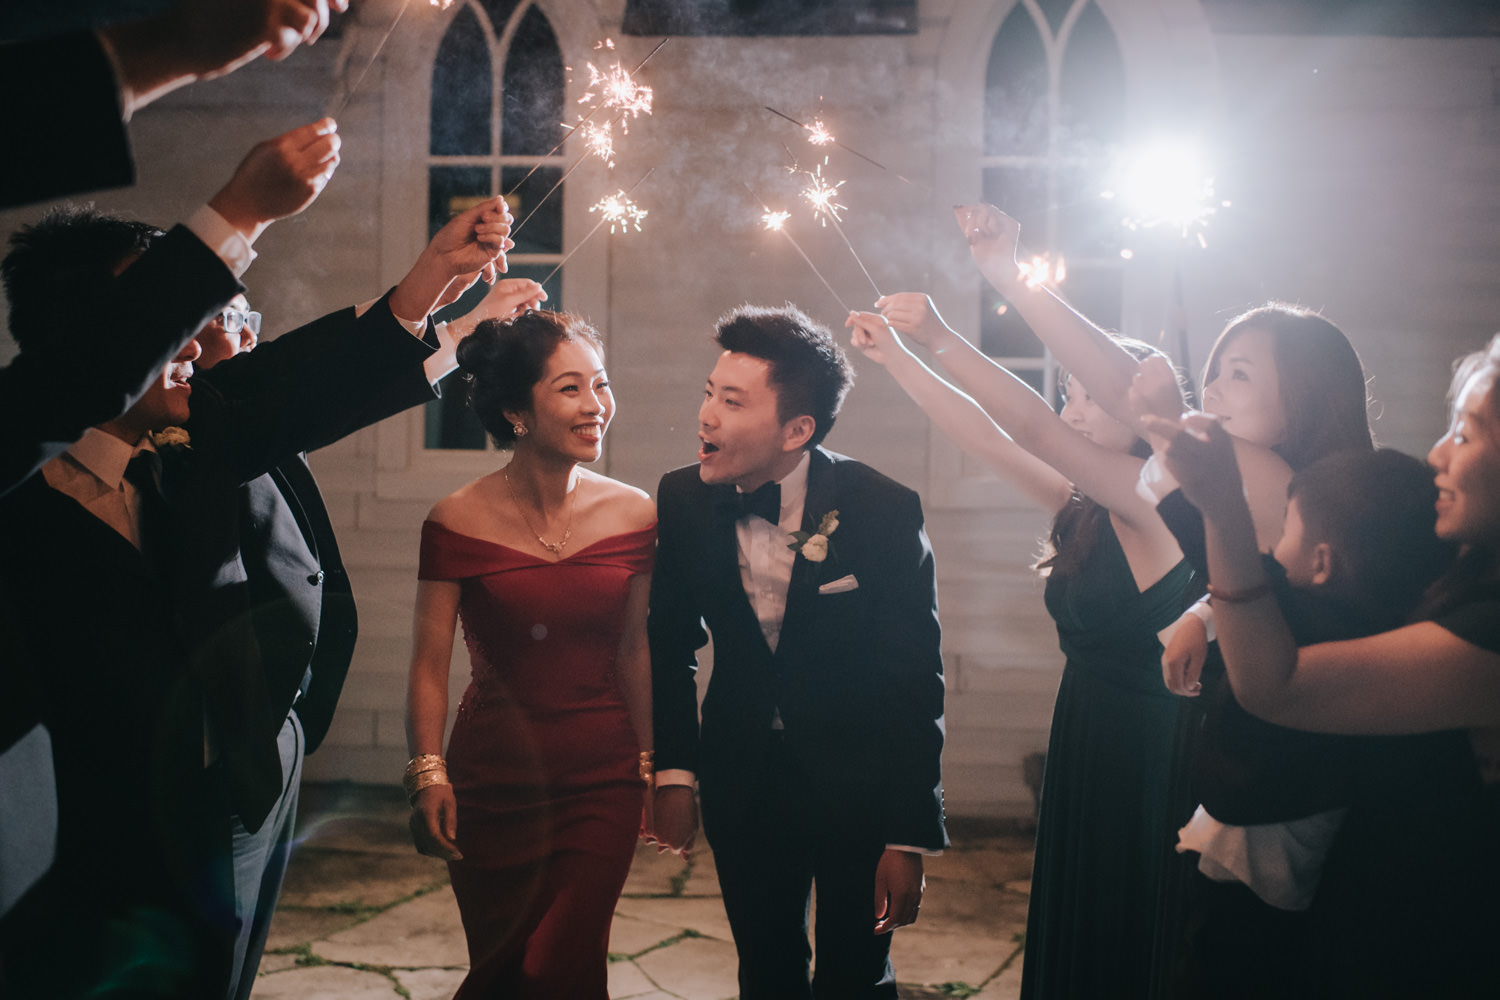 Doctor's House wedding reception evening portrait with sparklers romantic cheerful